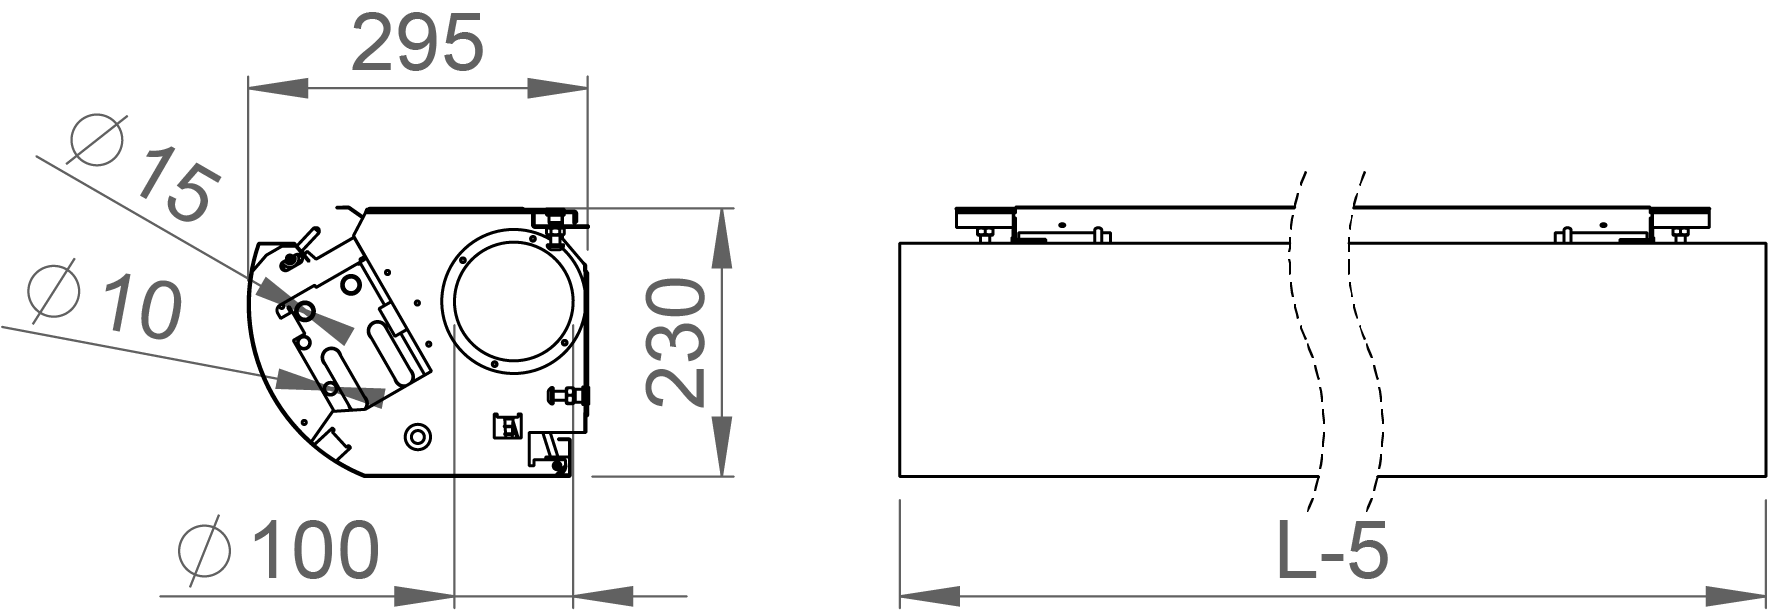 Pipe Connections of the Halton CaBeam Chilled Beam for Exposed Installation